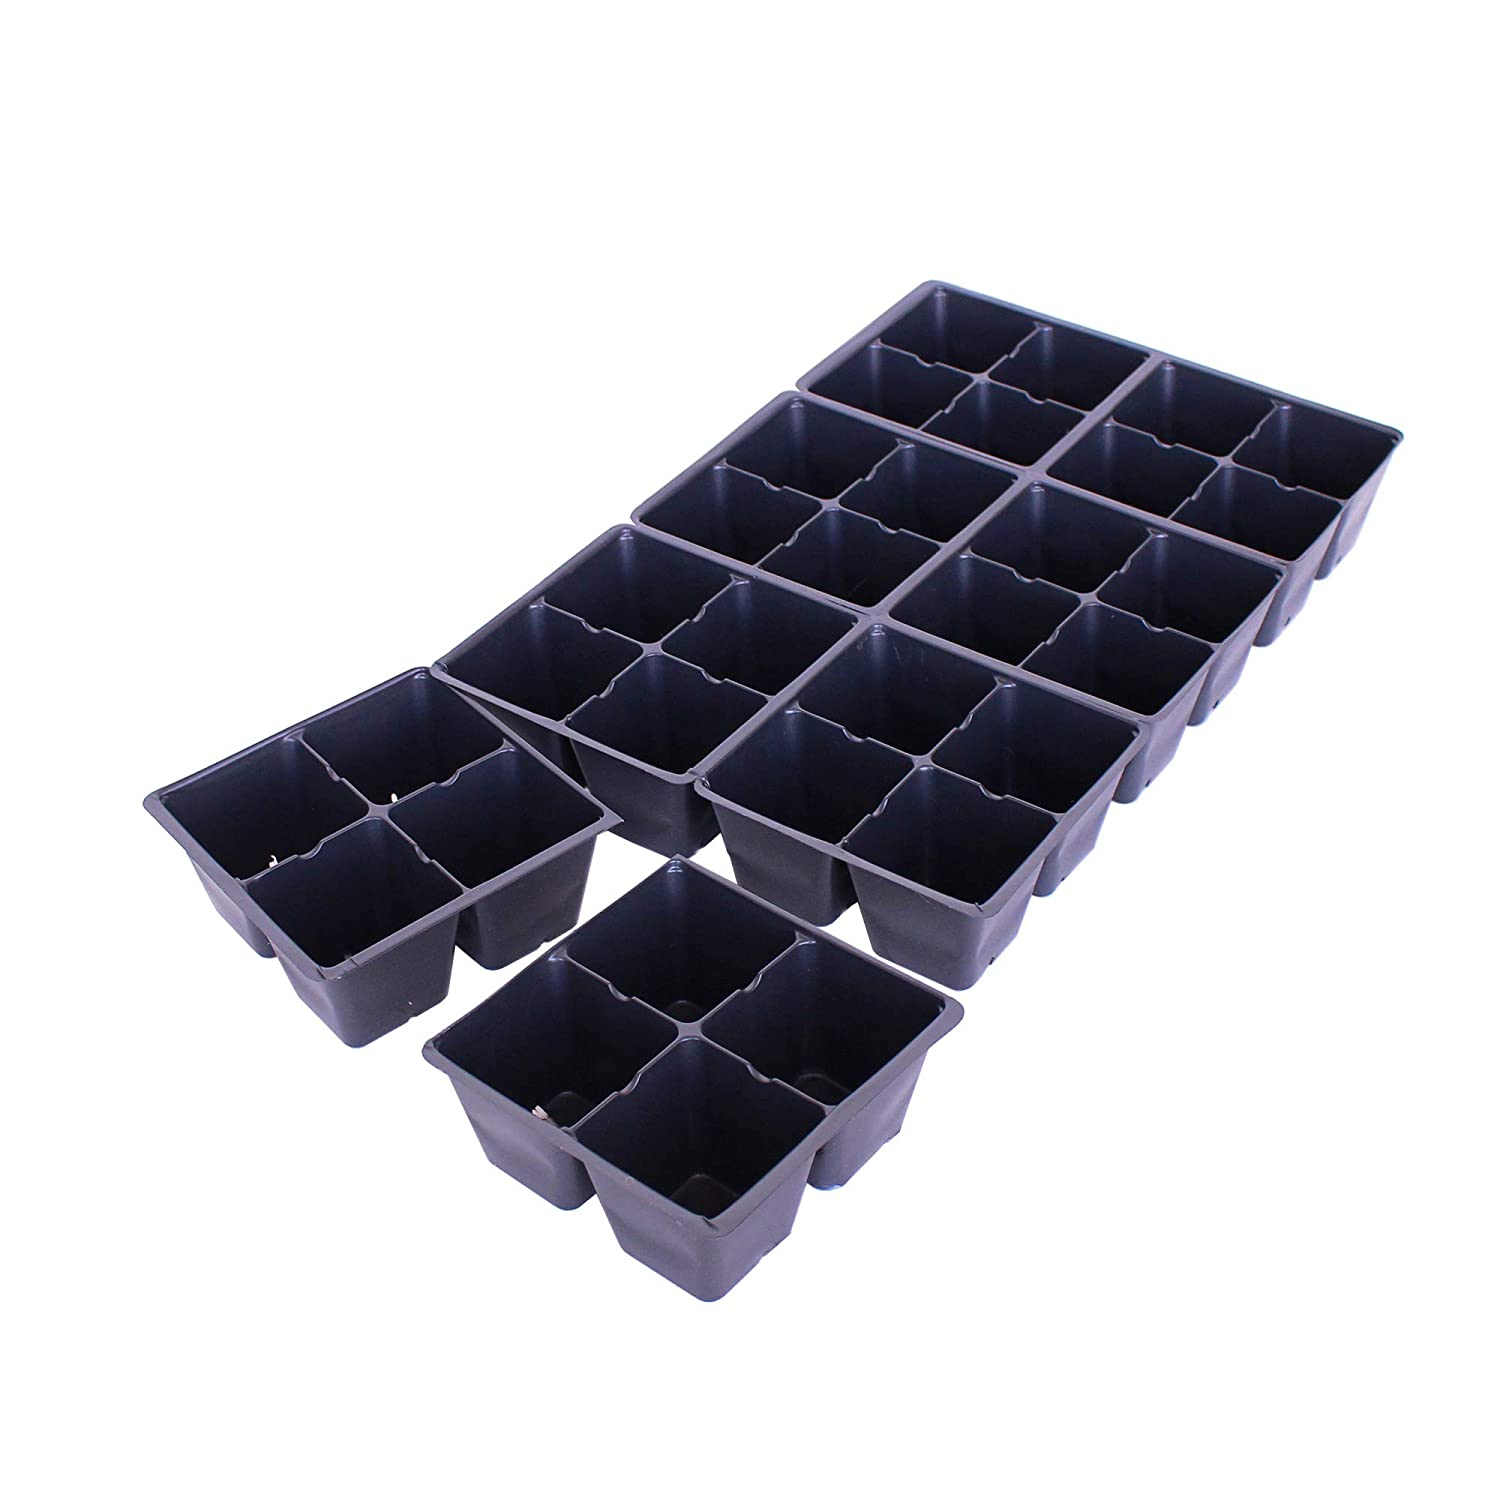 Handy Pantry Black Plastic Garden Tray Inserts - 5 Sheets of 32 Planting Pot Cells Each - 2x2 Nested x8 Configuration - Perforated - Nursery, Greenhouse, Gardening